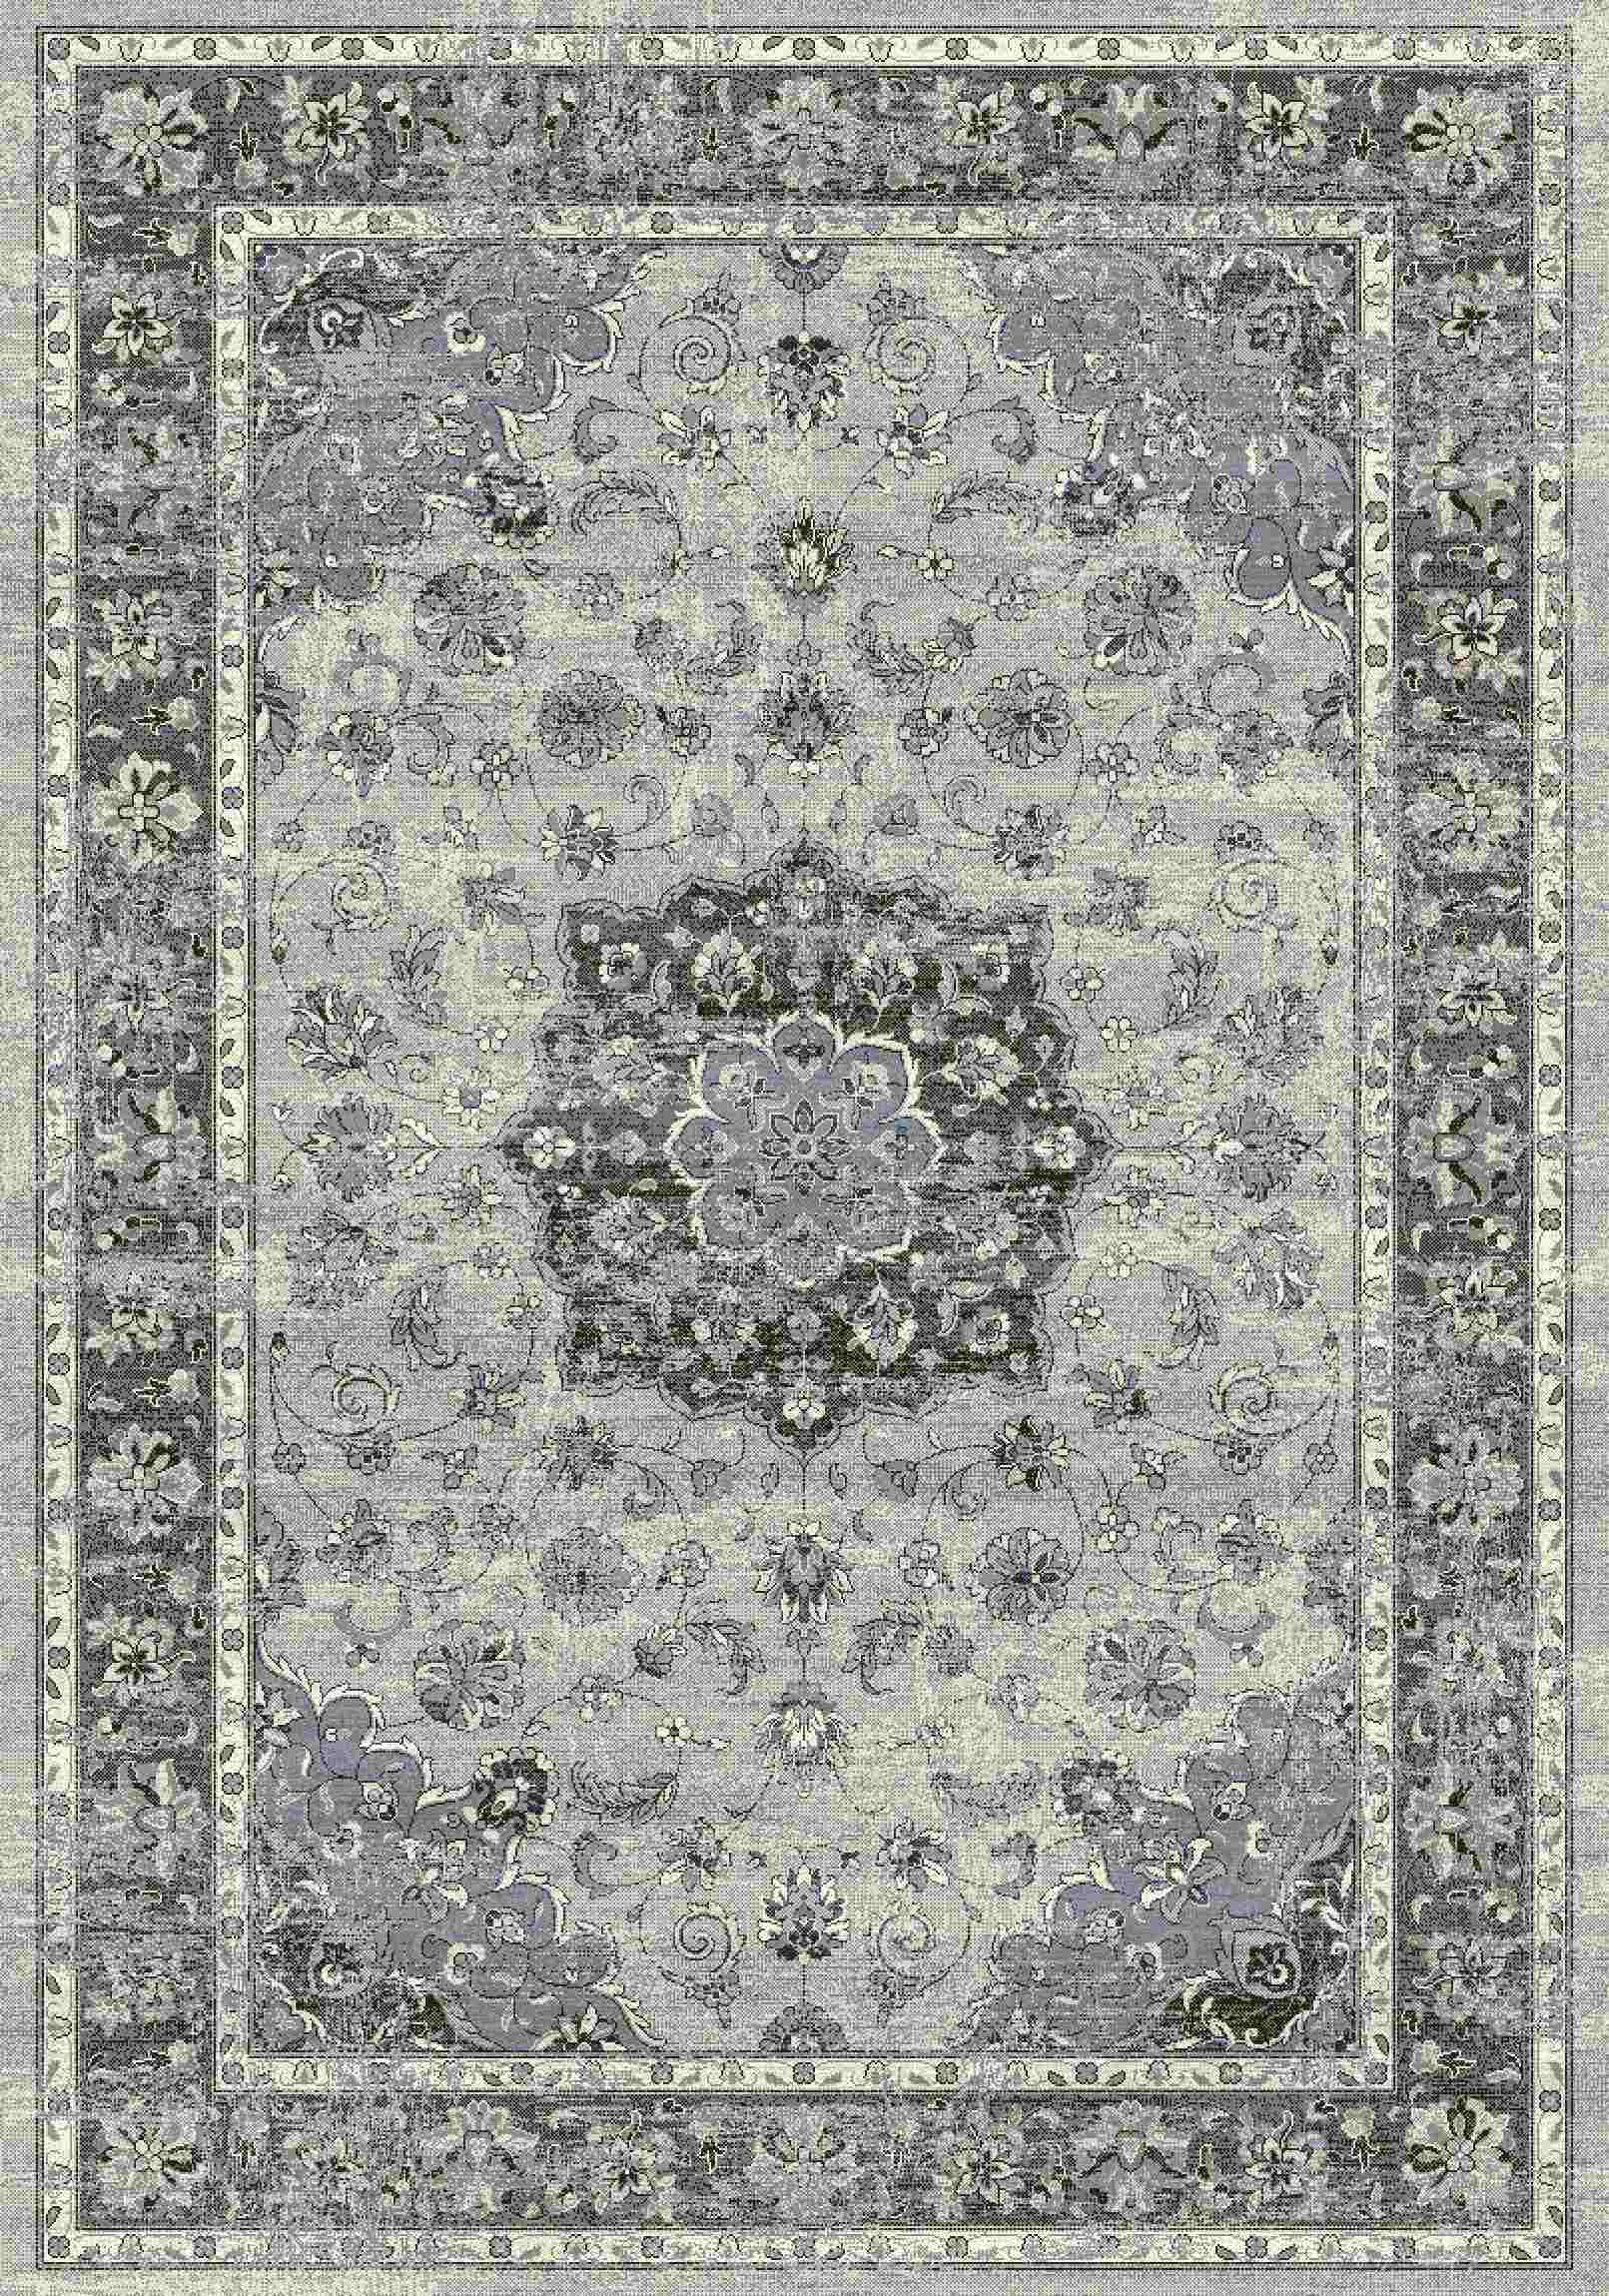 Dynamic Rugs Ancient Garden Distressed Silver/grey 57559 Area Rug